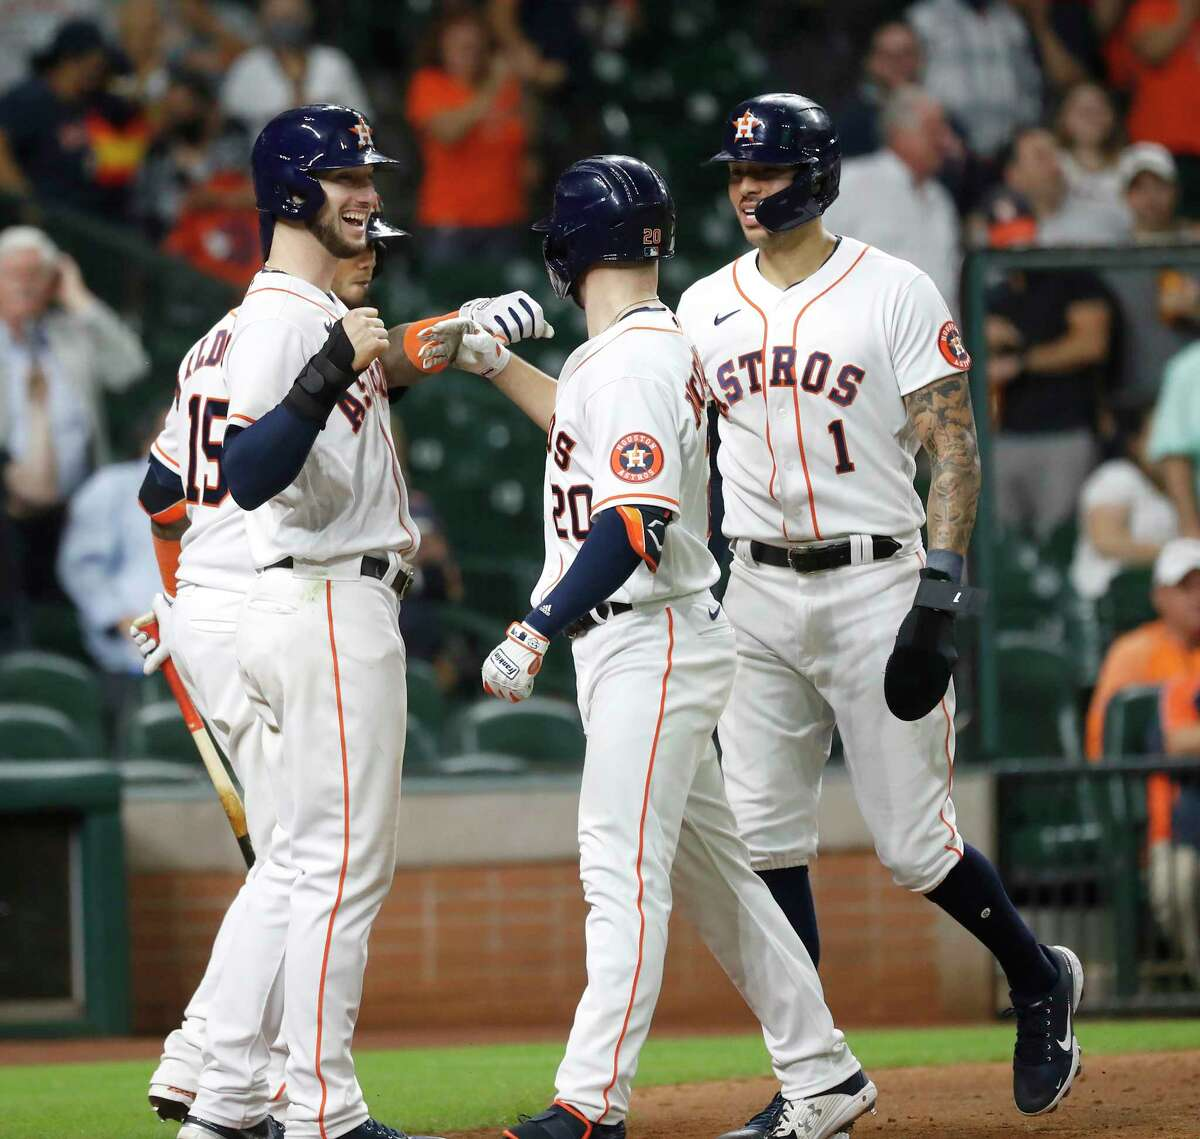 Houston Astros Chas McCormick (20) celebrates with Carlos Correa and Kyle Tucker after hitting a three-run home run off of Los Angeles Angels pitcher Patrick Sandoval during the eighth inning of an MLB baseball game at Minute Maid Park, Wednesday, May 12, 2021, in Houston.